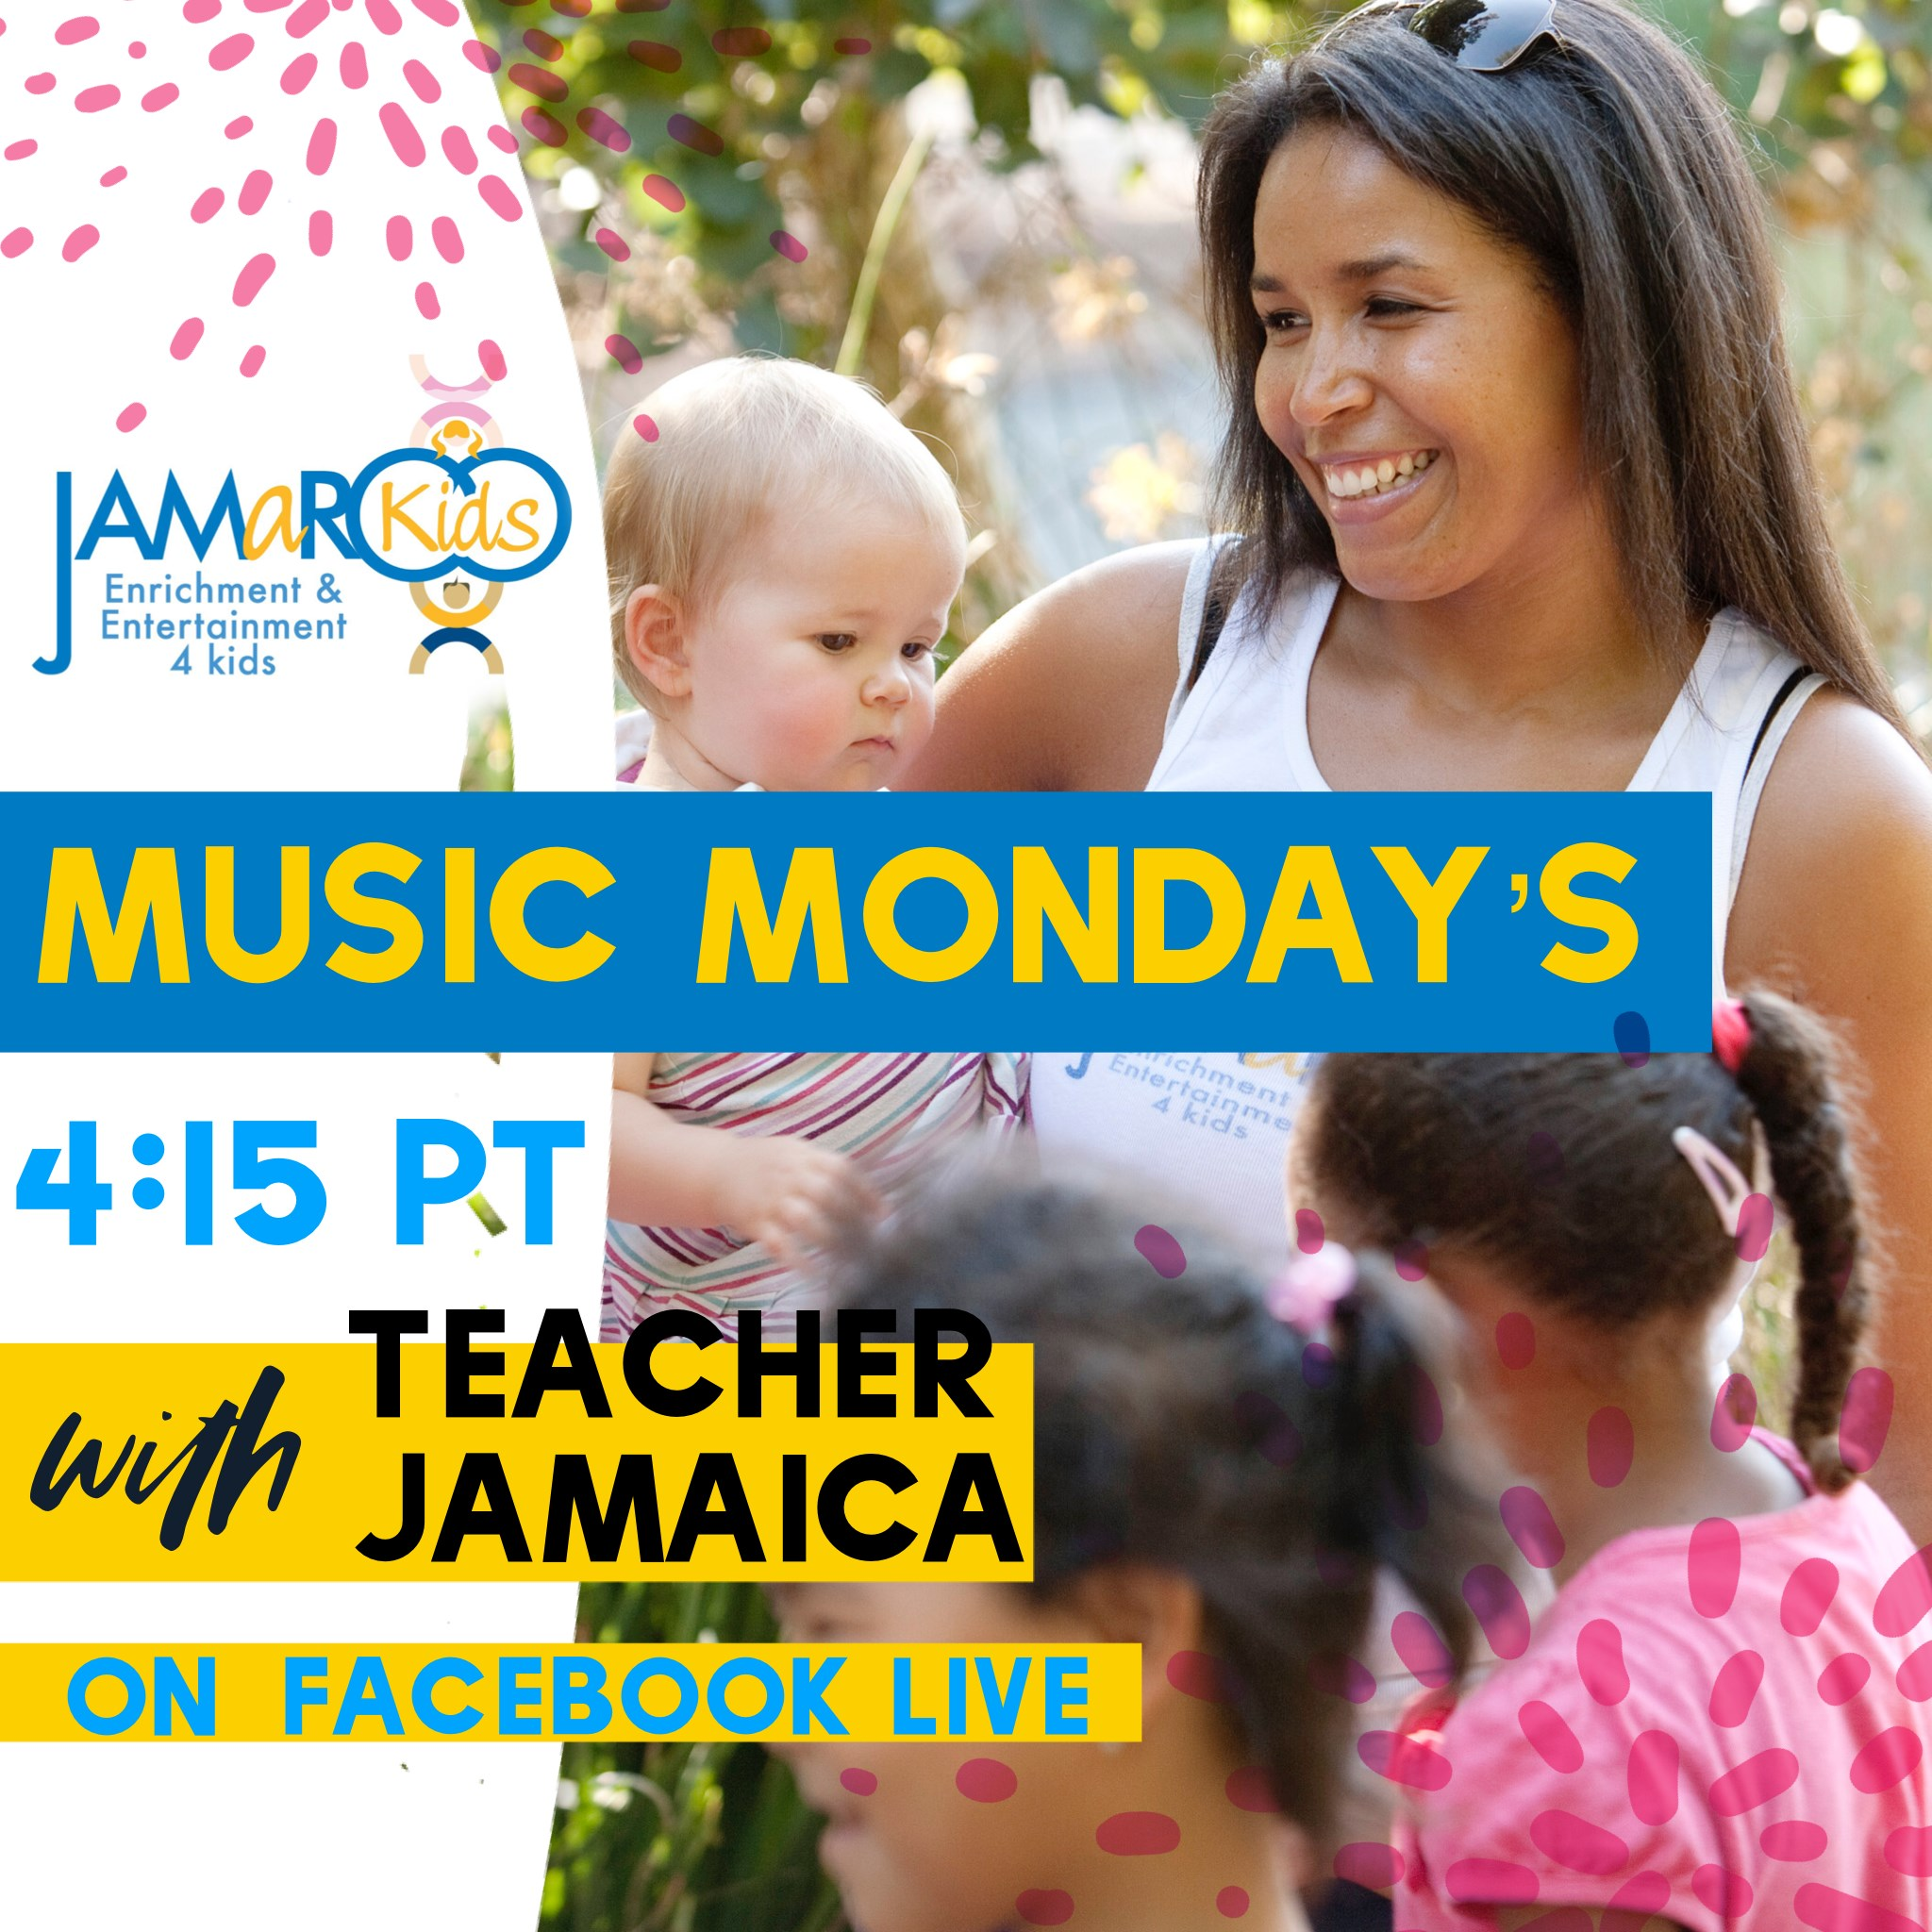 JAMaROO Kids Music Mondays